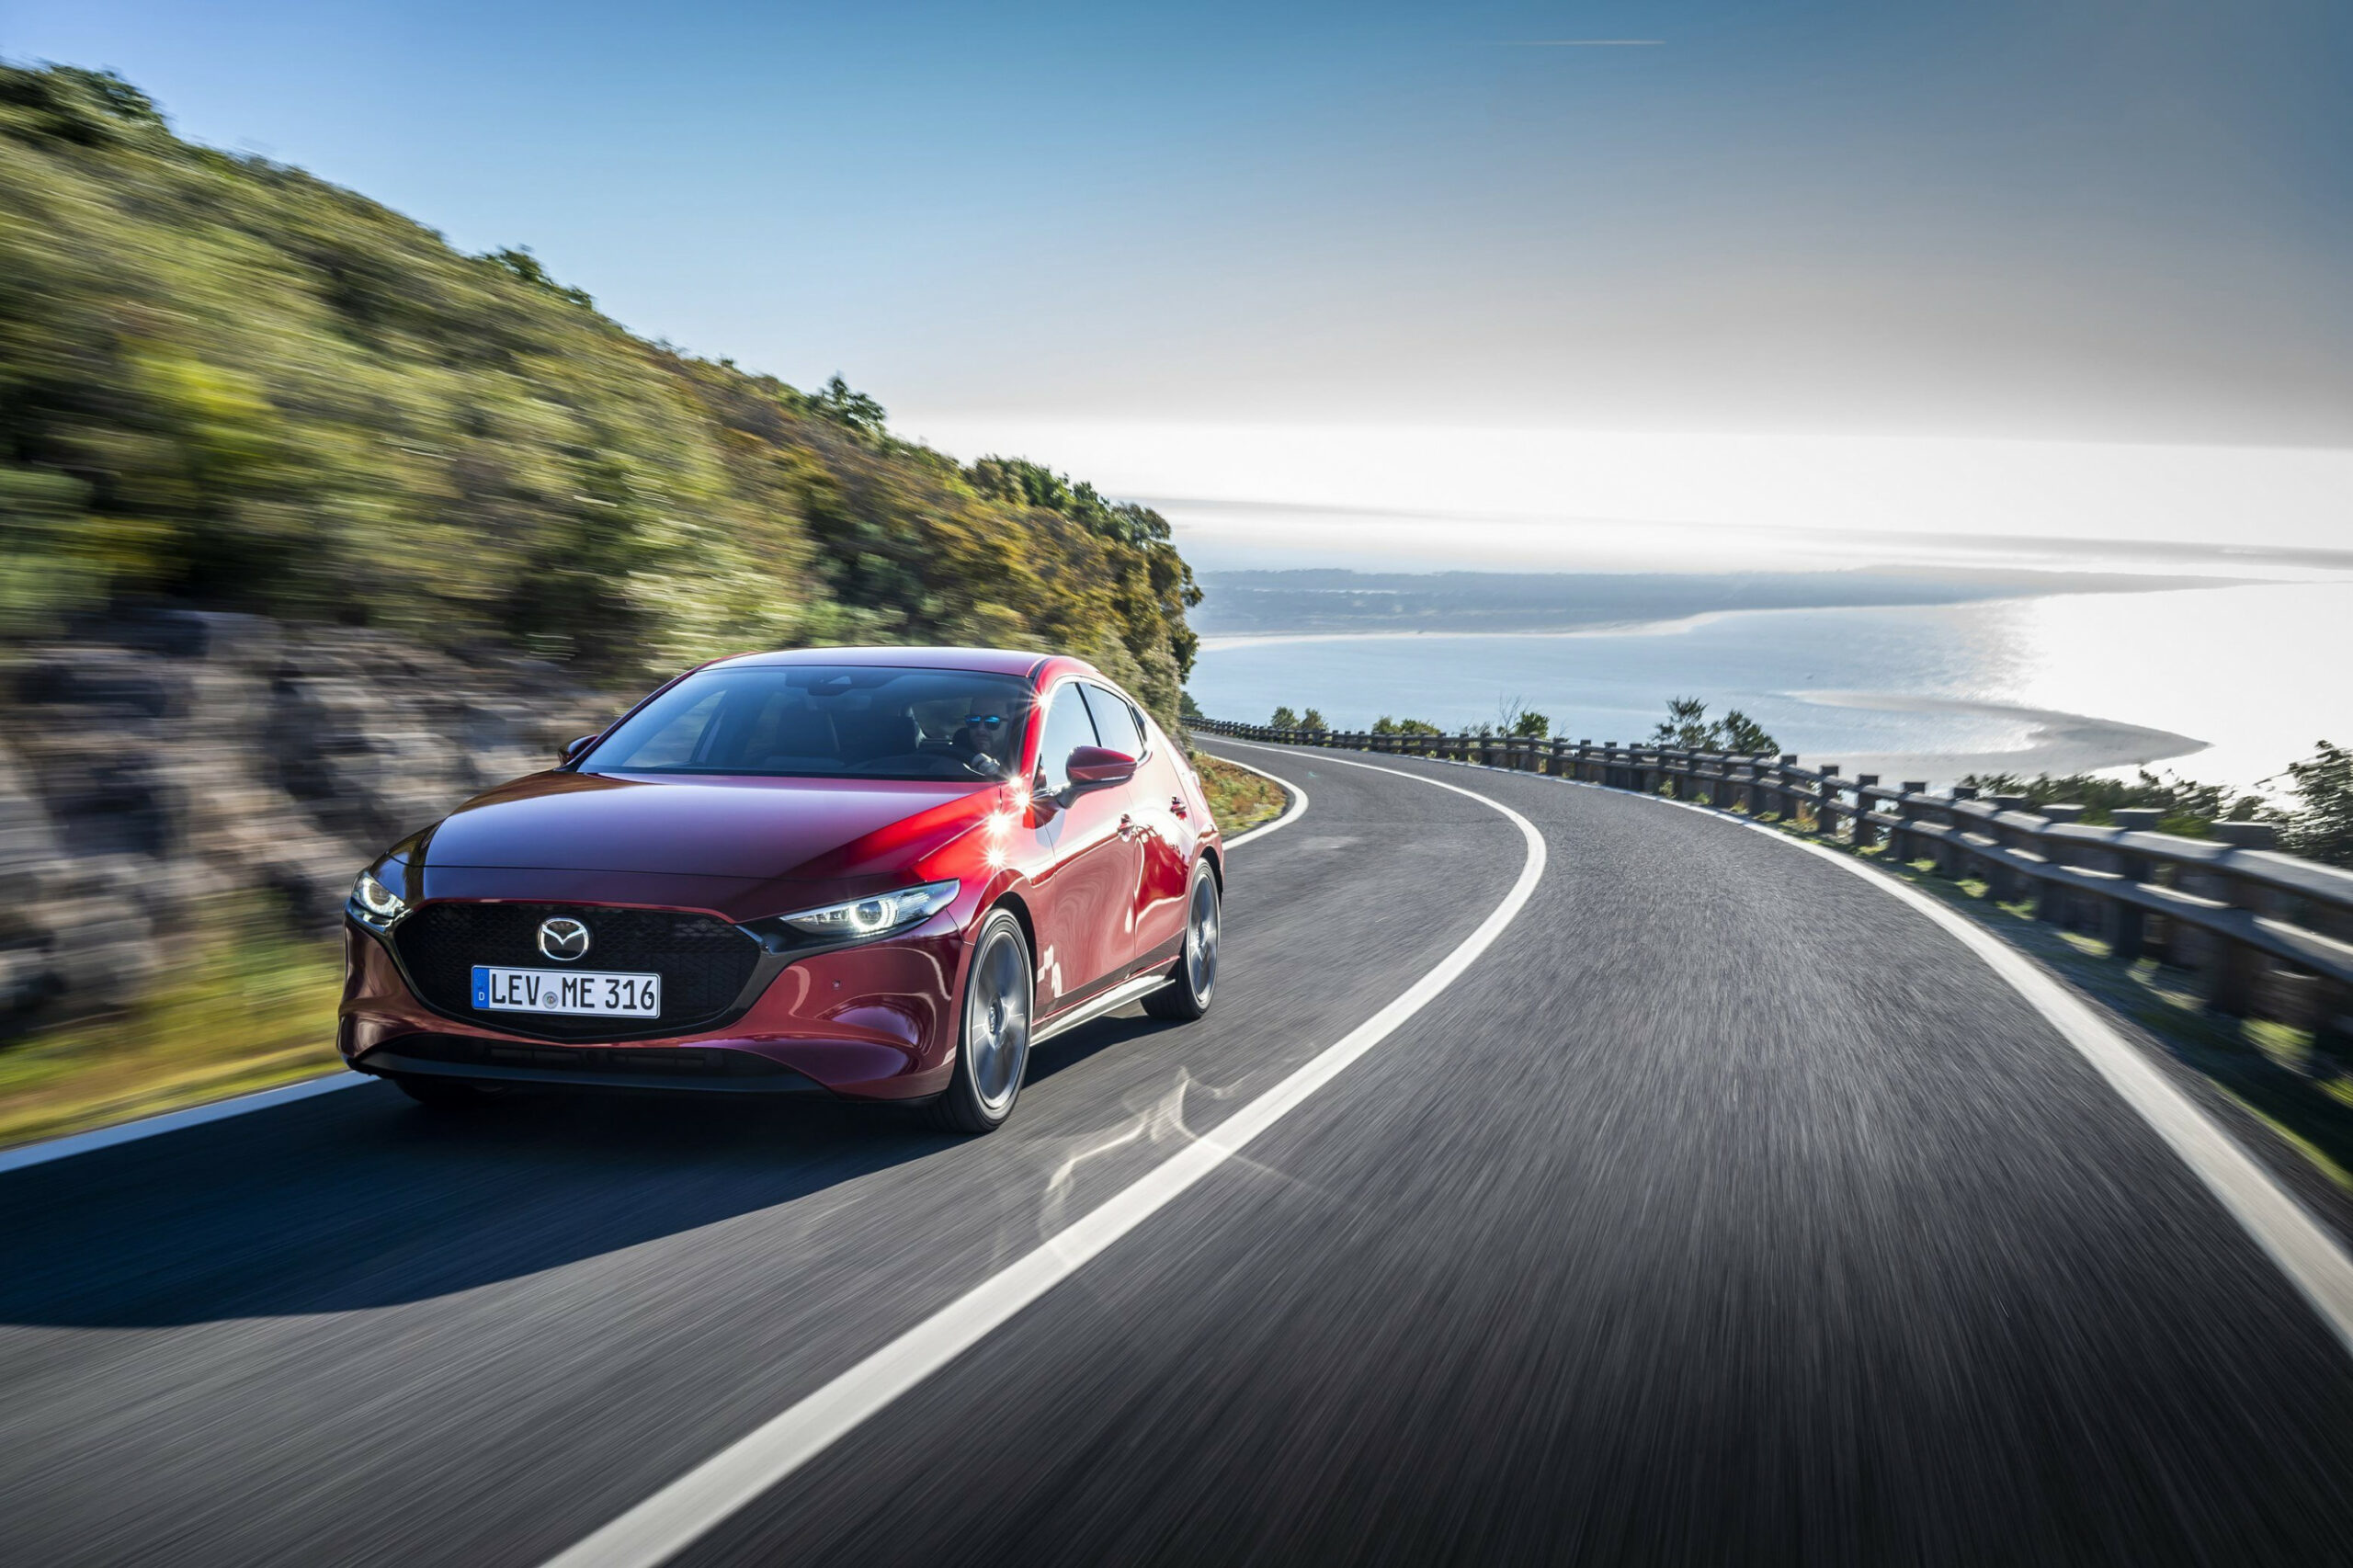 Mazda to launch new sales operations in Greece - mazda june 2020 sales